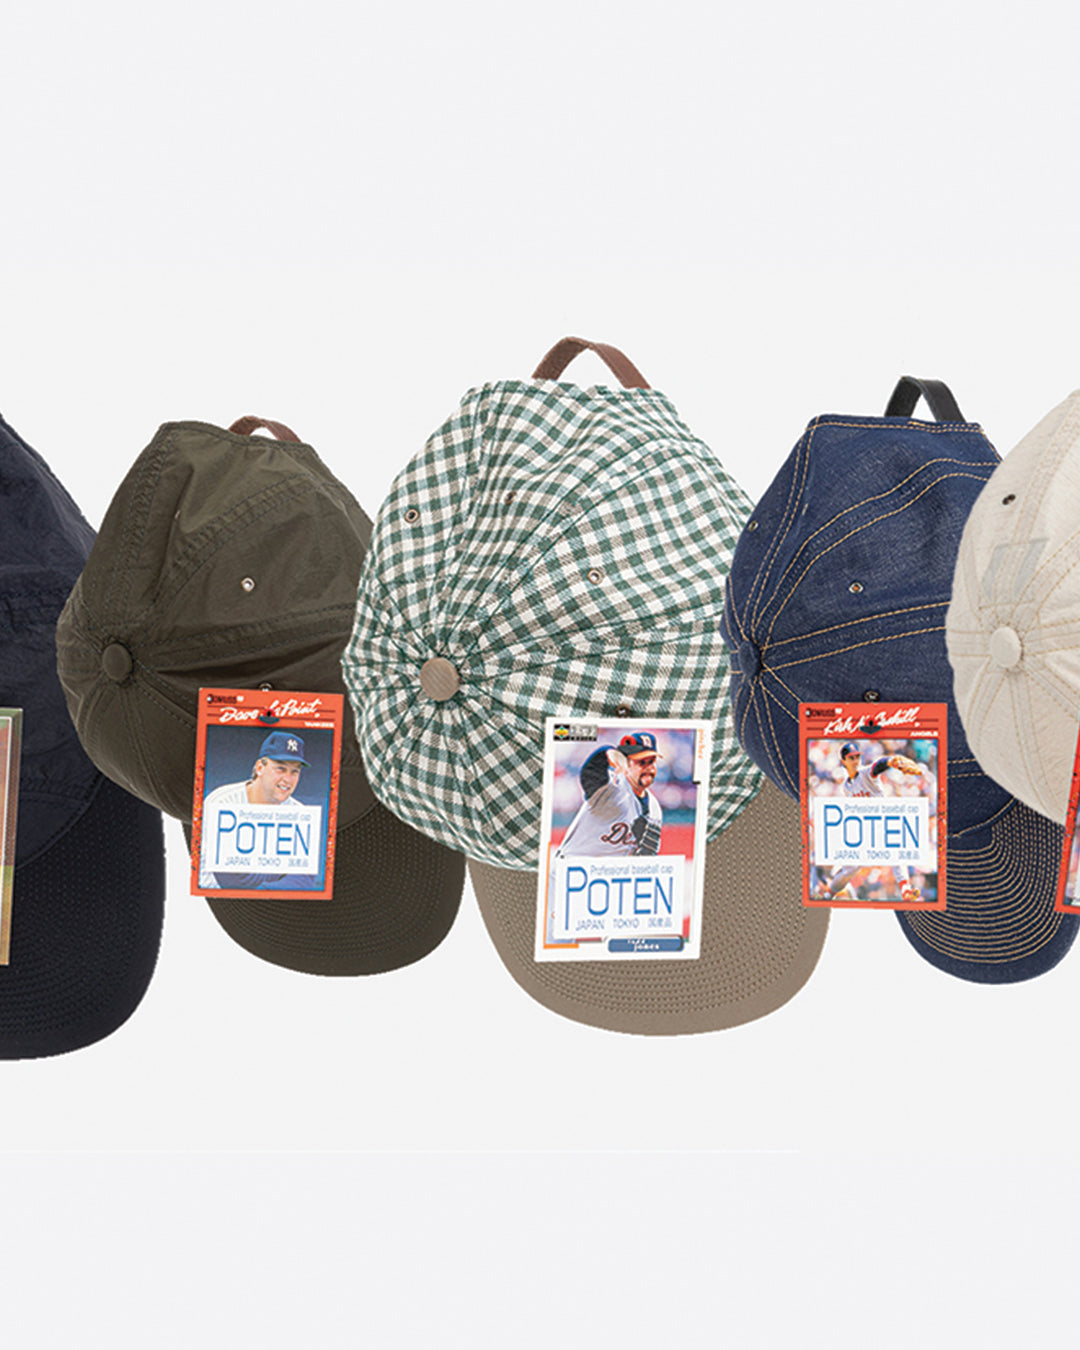 poten hats made in japan available at wallace mercantile shop vancouver canada